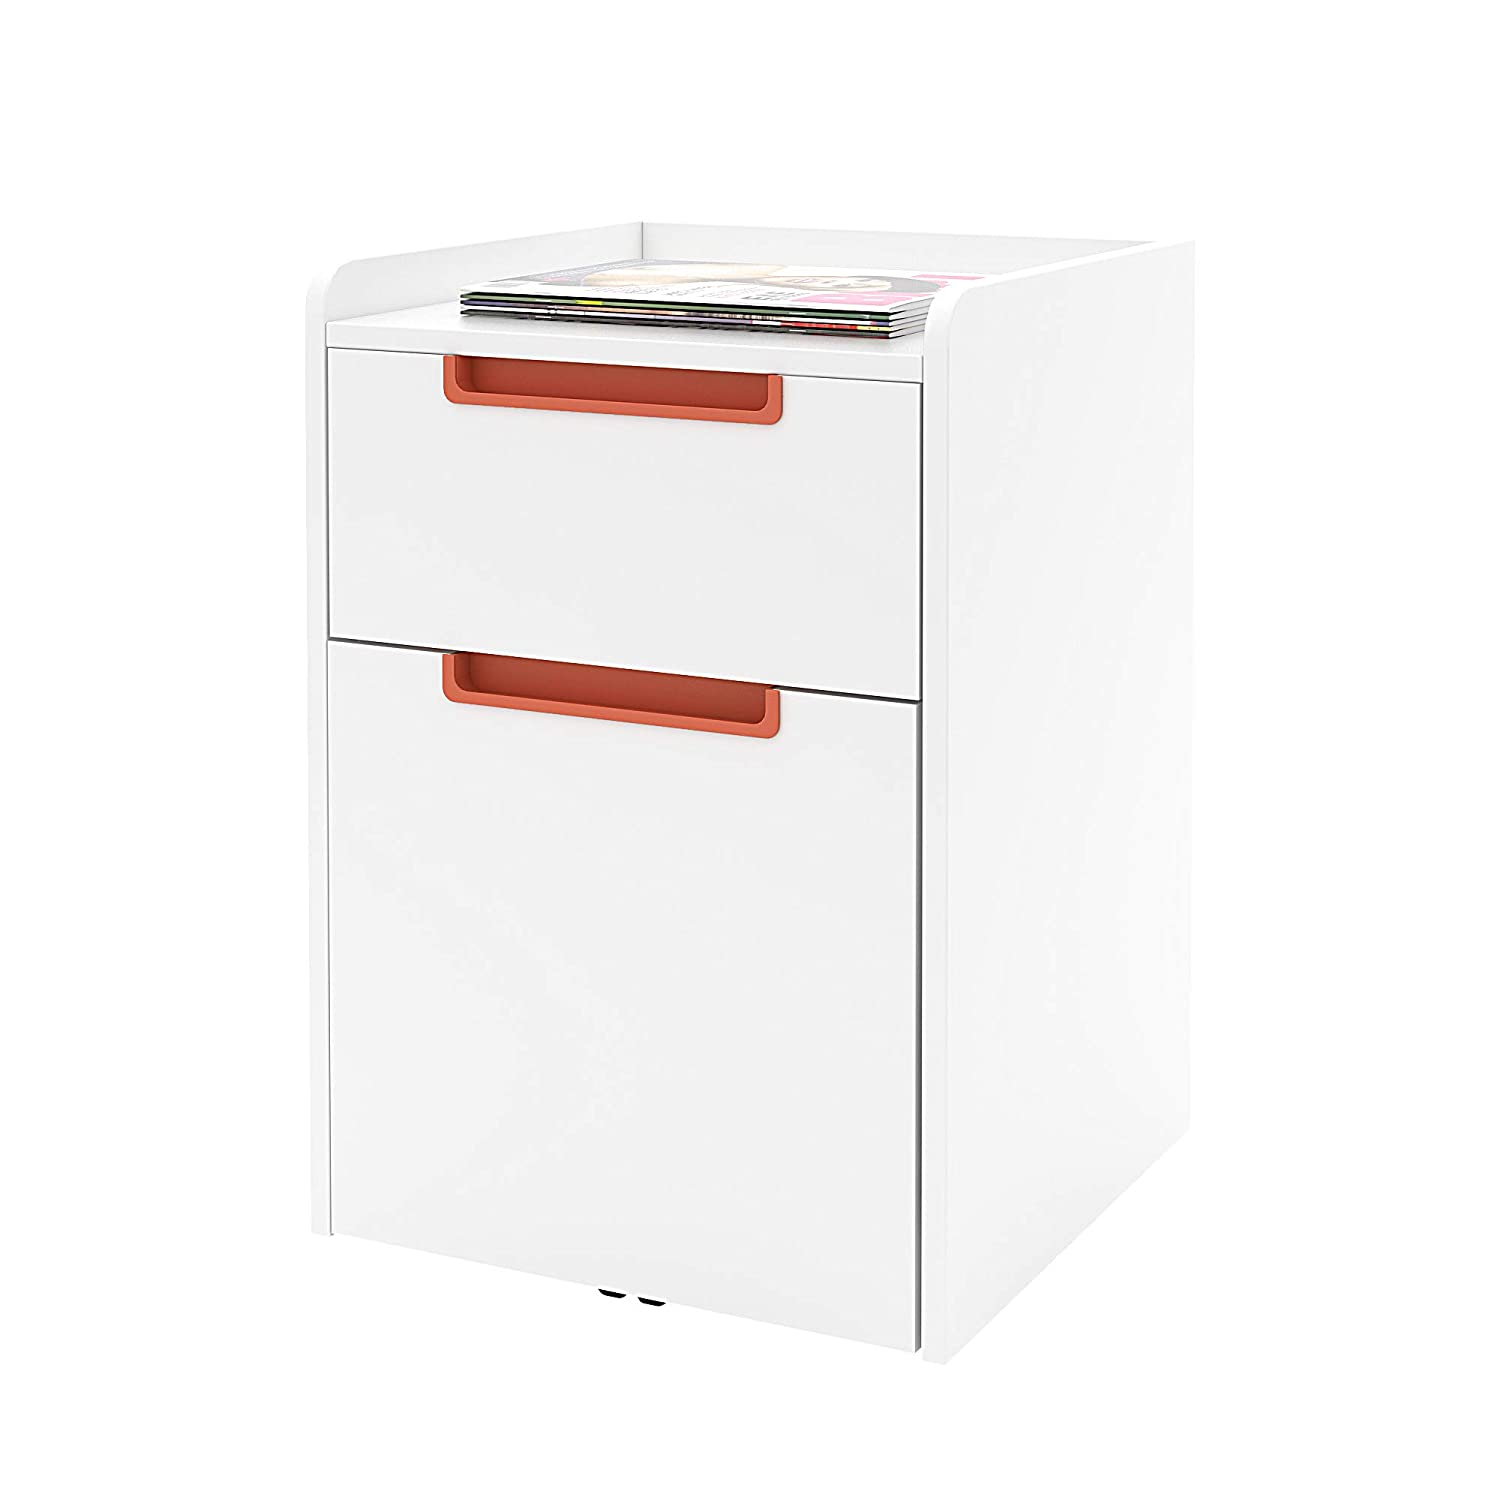 2-Drawer Wood Mobile File Cabinet, Letter Size,Full-Handle Vertical File Cabinet (White & Blue) HDY292F HJKUI9